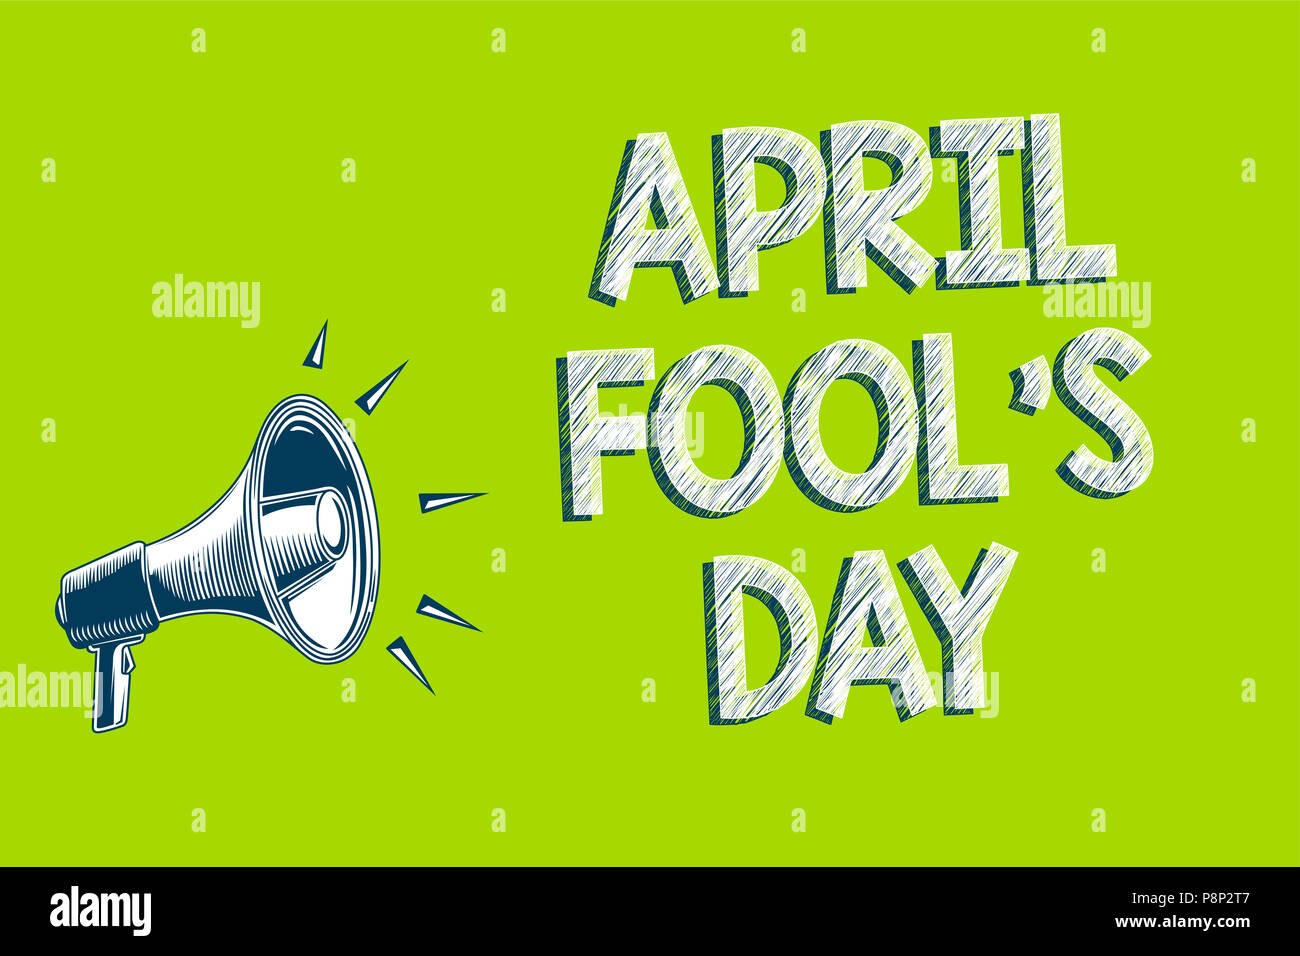 Writing note showing April Fool s is Day. Business photo showcasing Practical jokes humor pranks Celebration funny foolish Artwork convey message spea - Stock Image